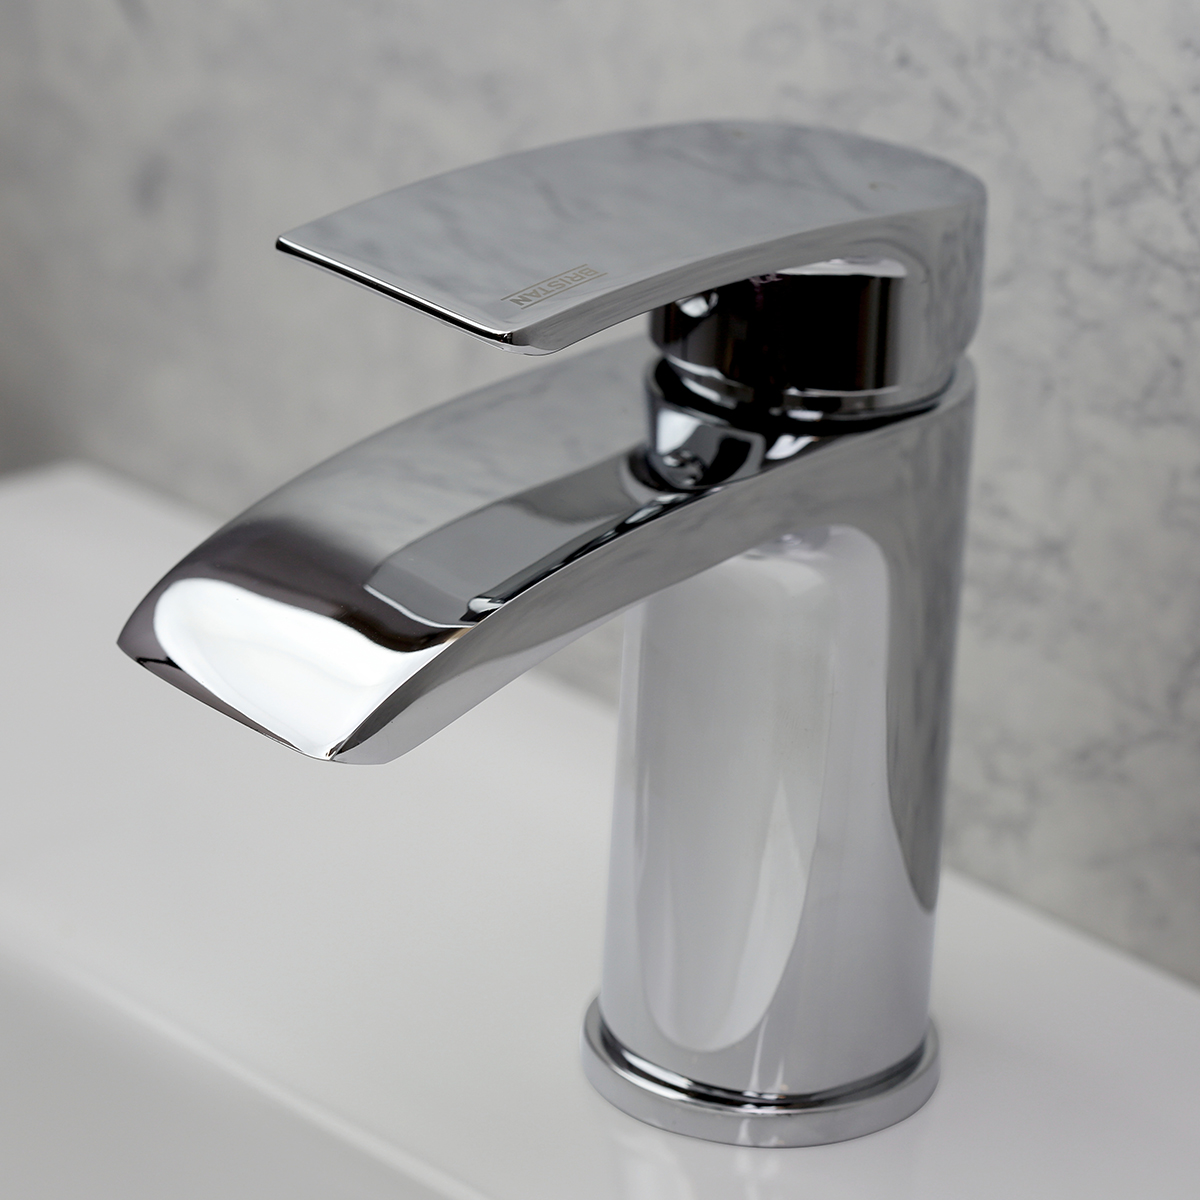 Bristan Glide Basin Mixer Tap - Chrome